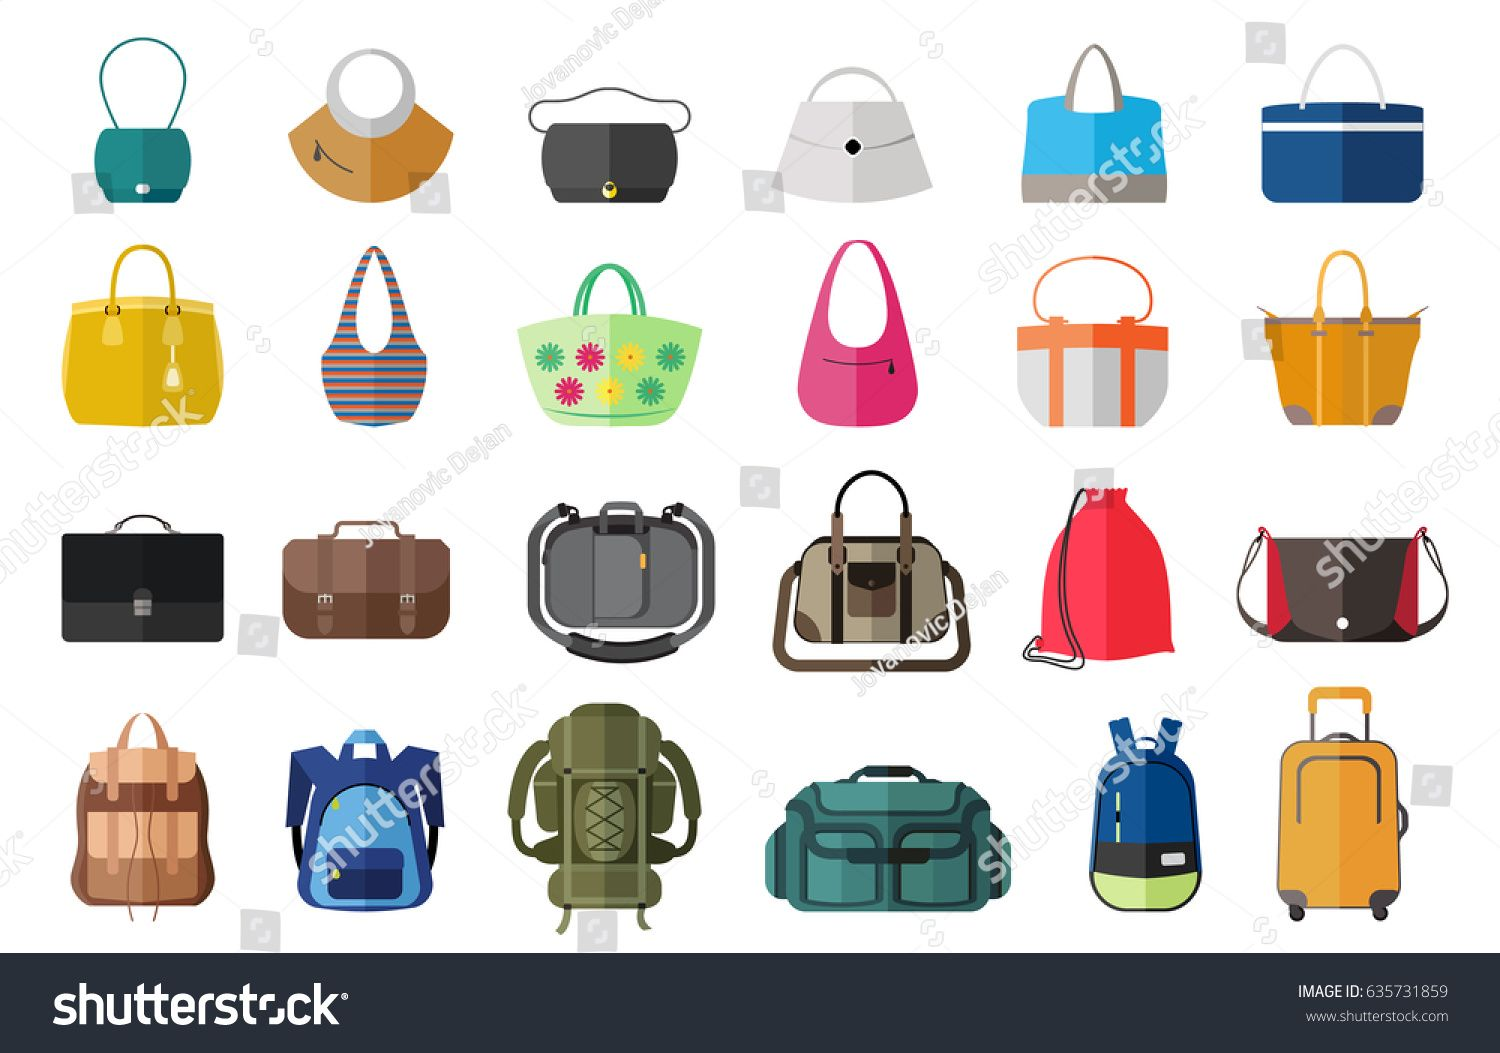 1ef14c0c9efd Set of icons of bags and luggage. Various types of bags ranging from ...